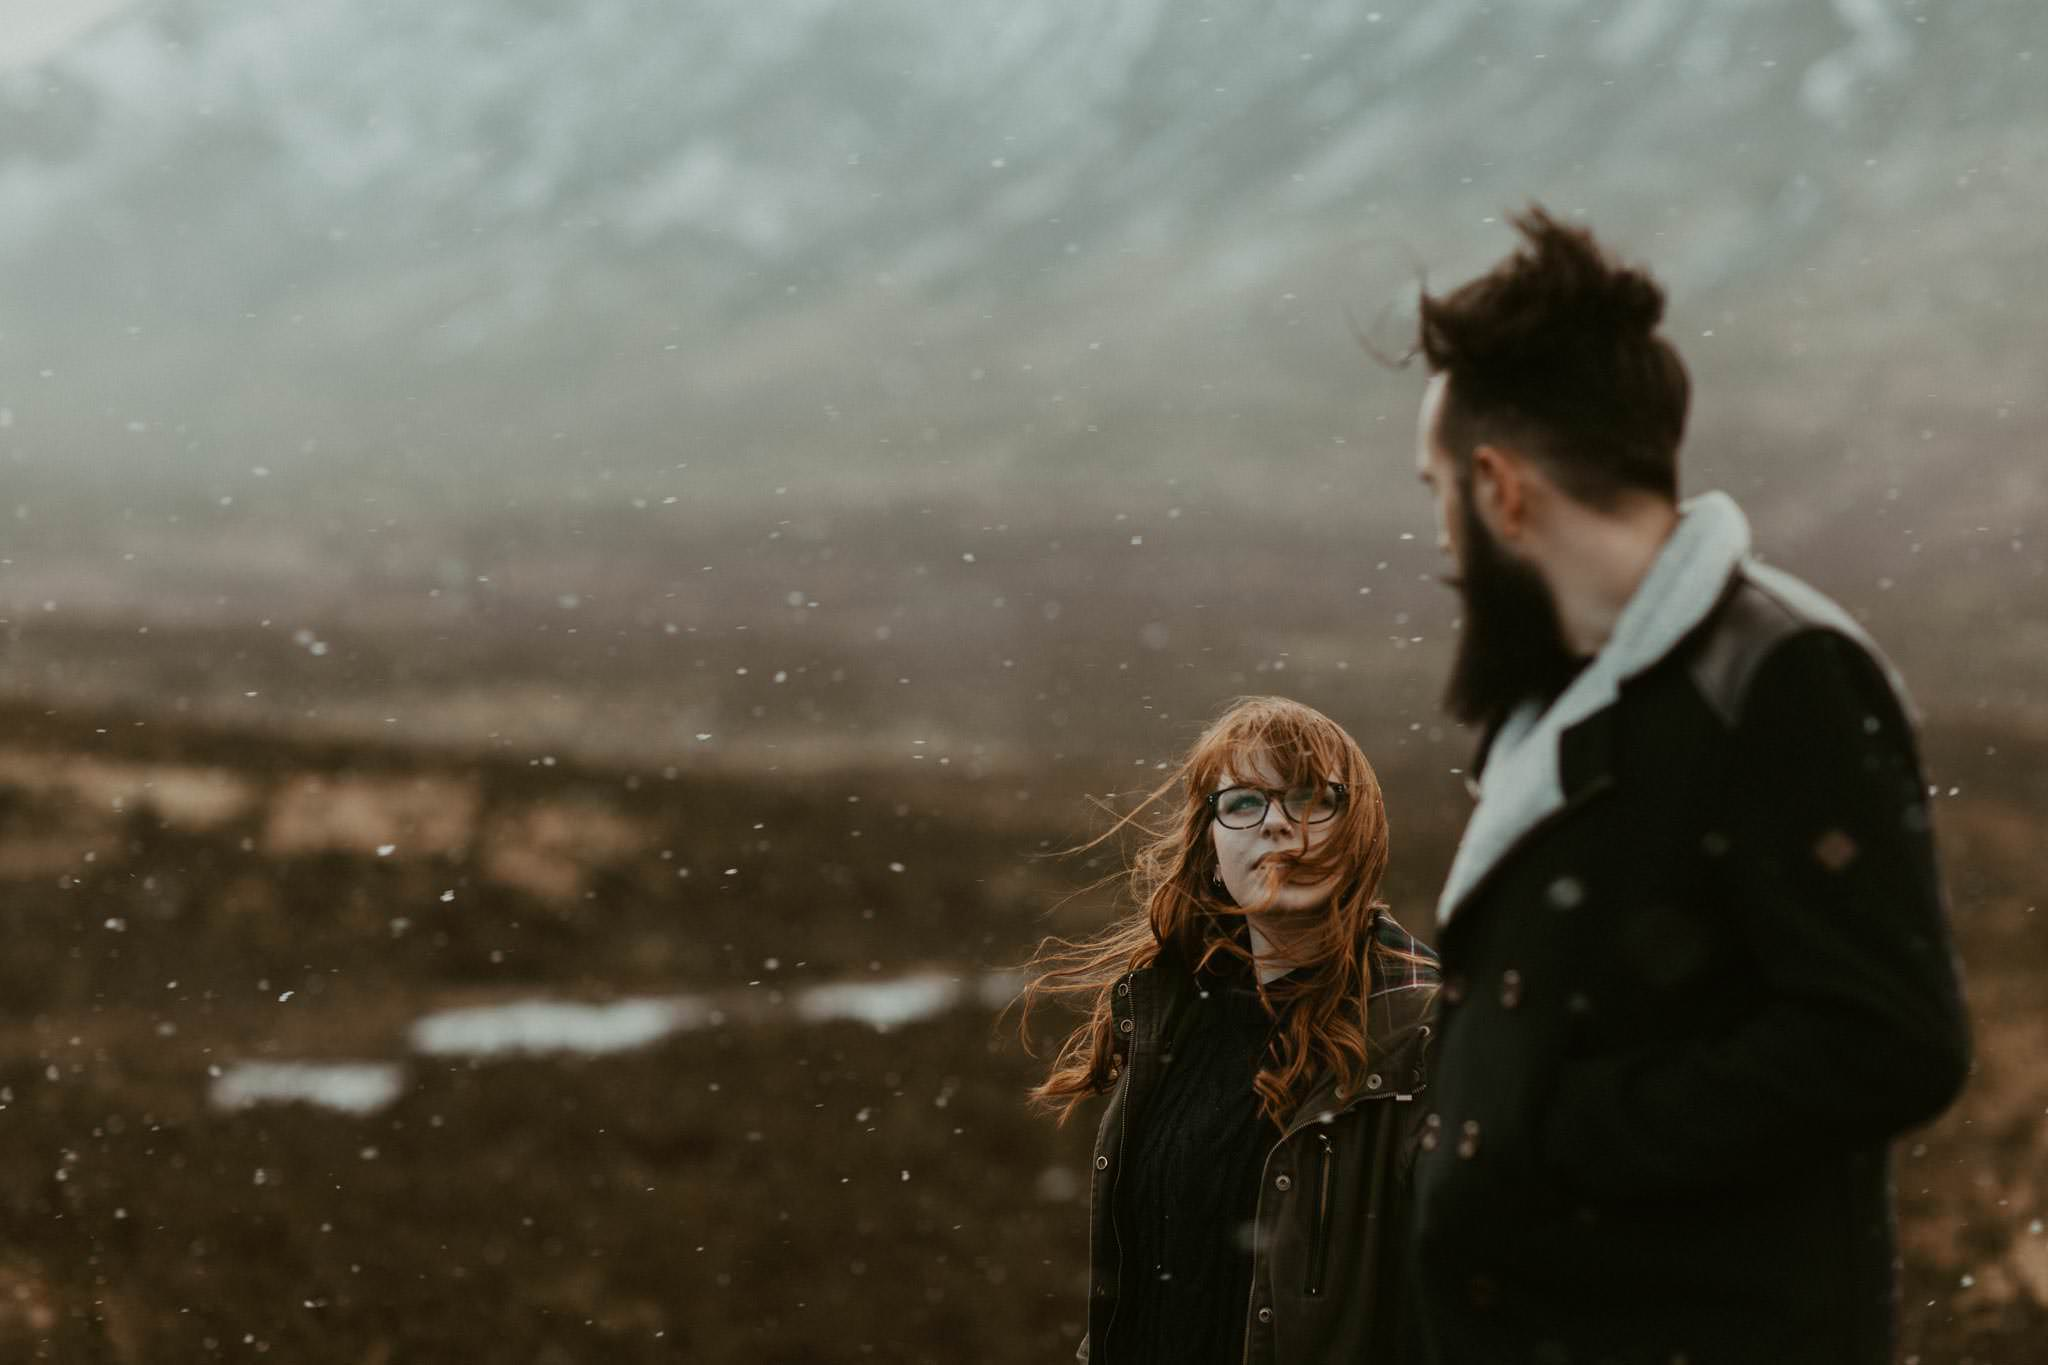 elopement-proposal-glencoe-photos-030